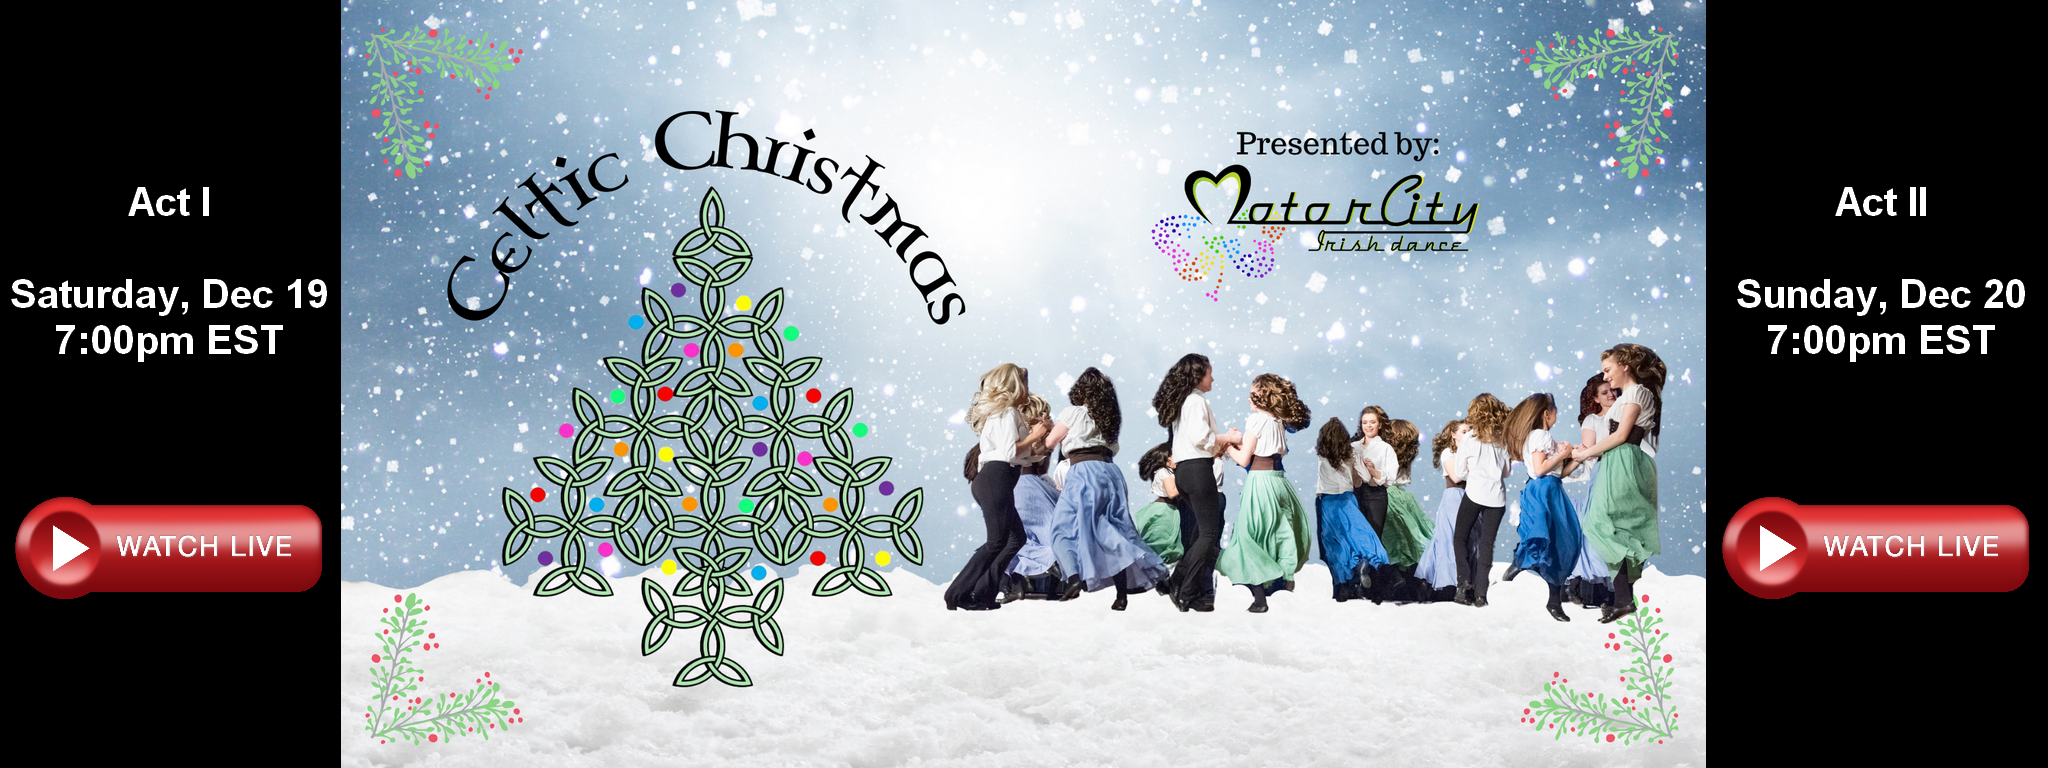 Celtic Christmas 2020 - Presented By Motor City Irish Dance